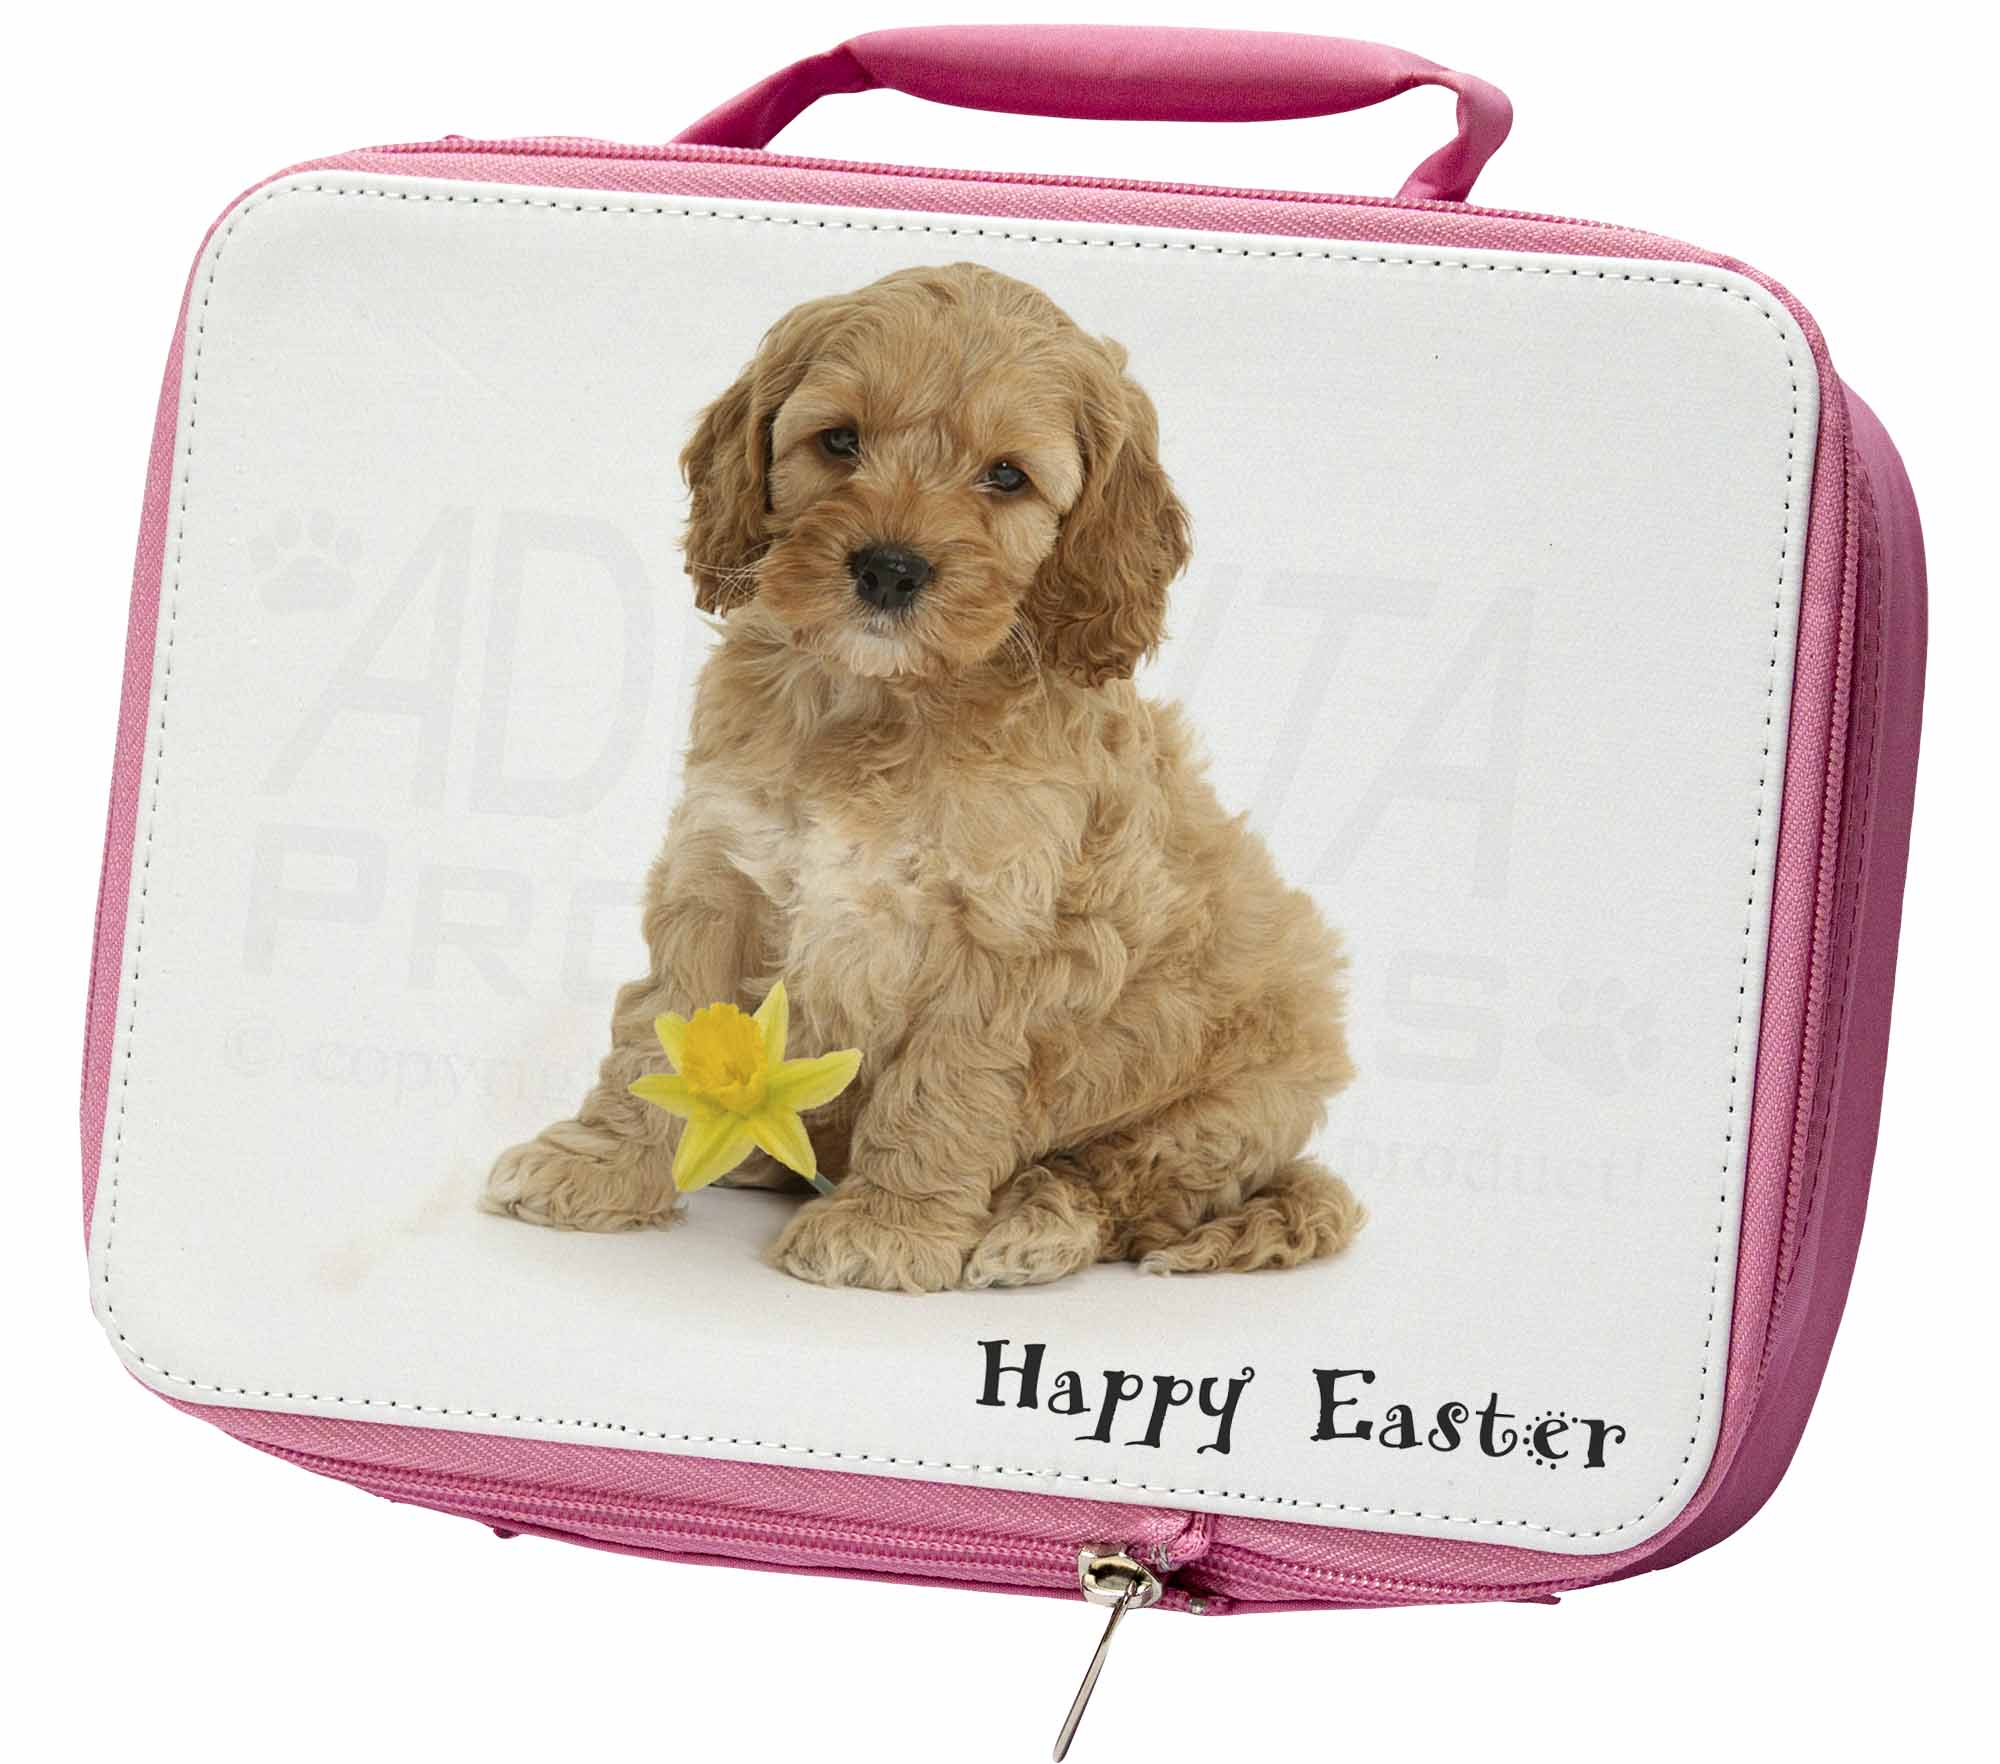 'happy Easter' Cockerpoodle Insulated Pink School Lunch Box Bag, Ad-cp6da1lbp